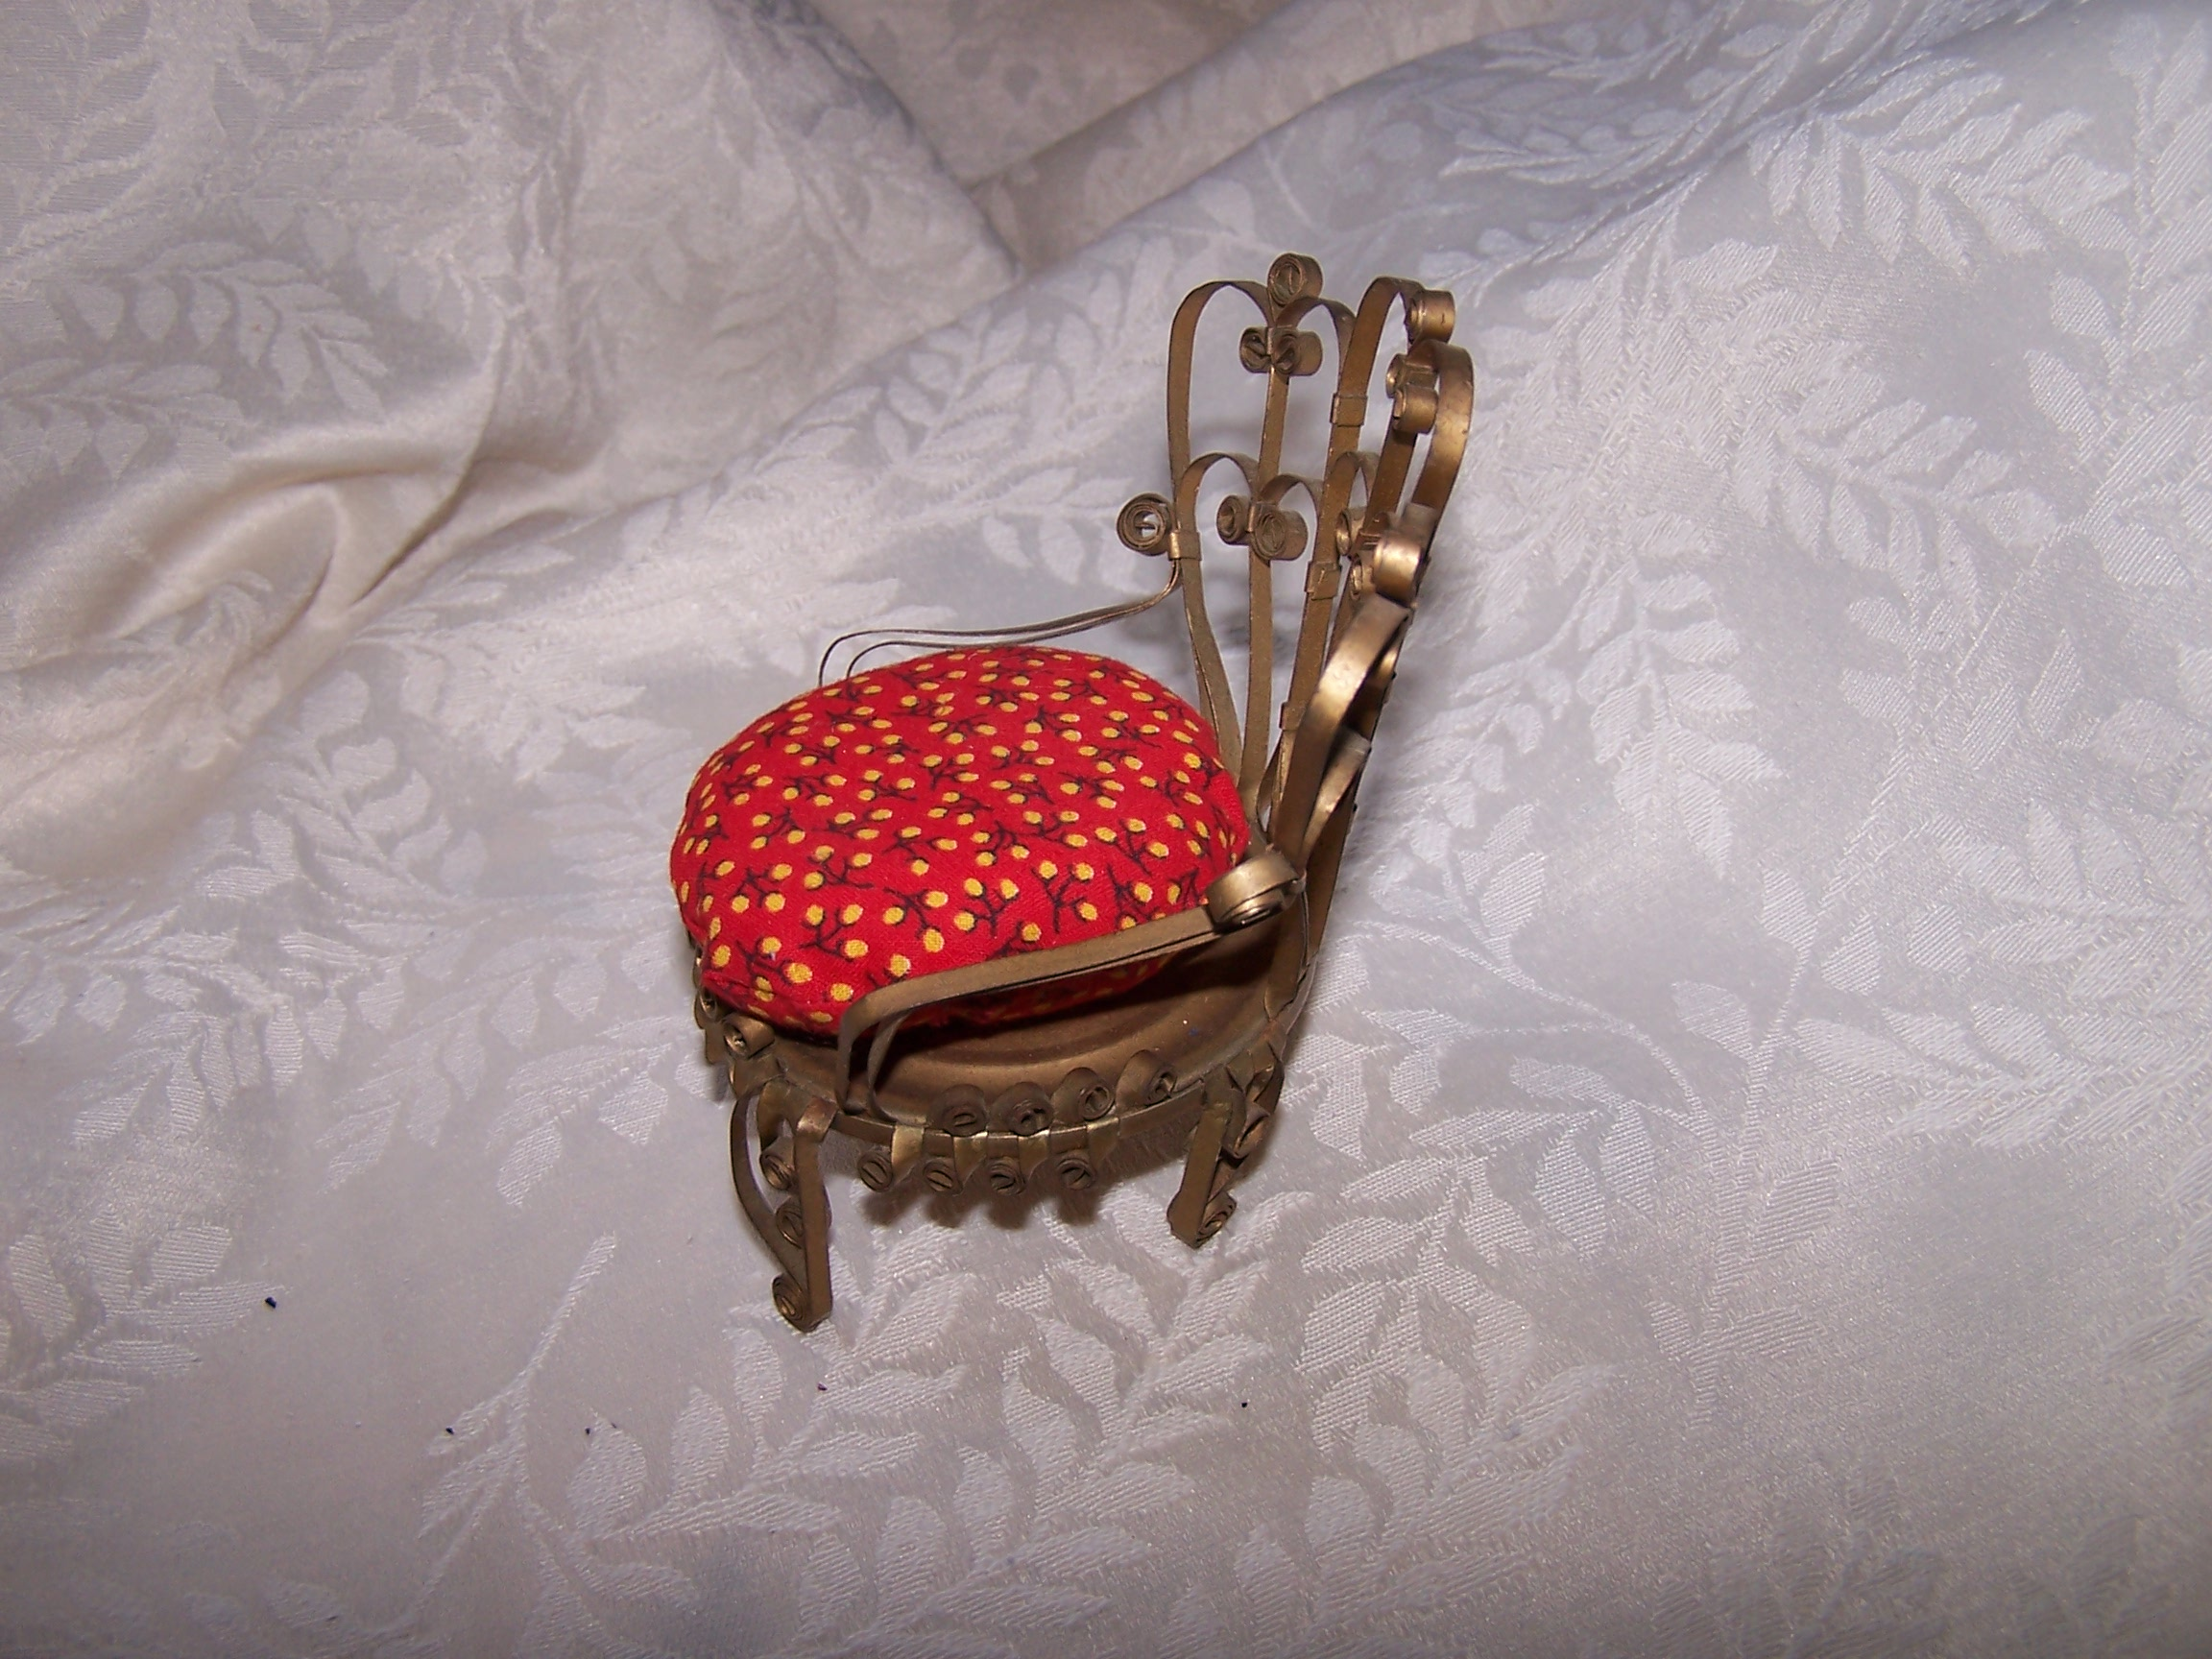 Image 1 of Quilled Pin Cushion Chair, Curved Back, Gold, Folk Art, Vintage